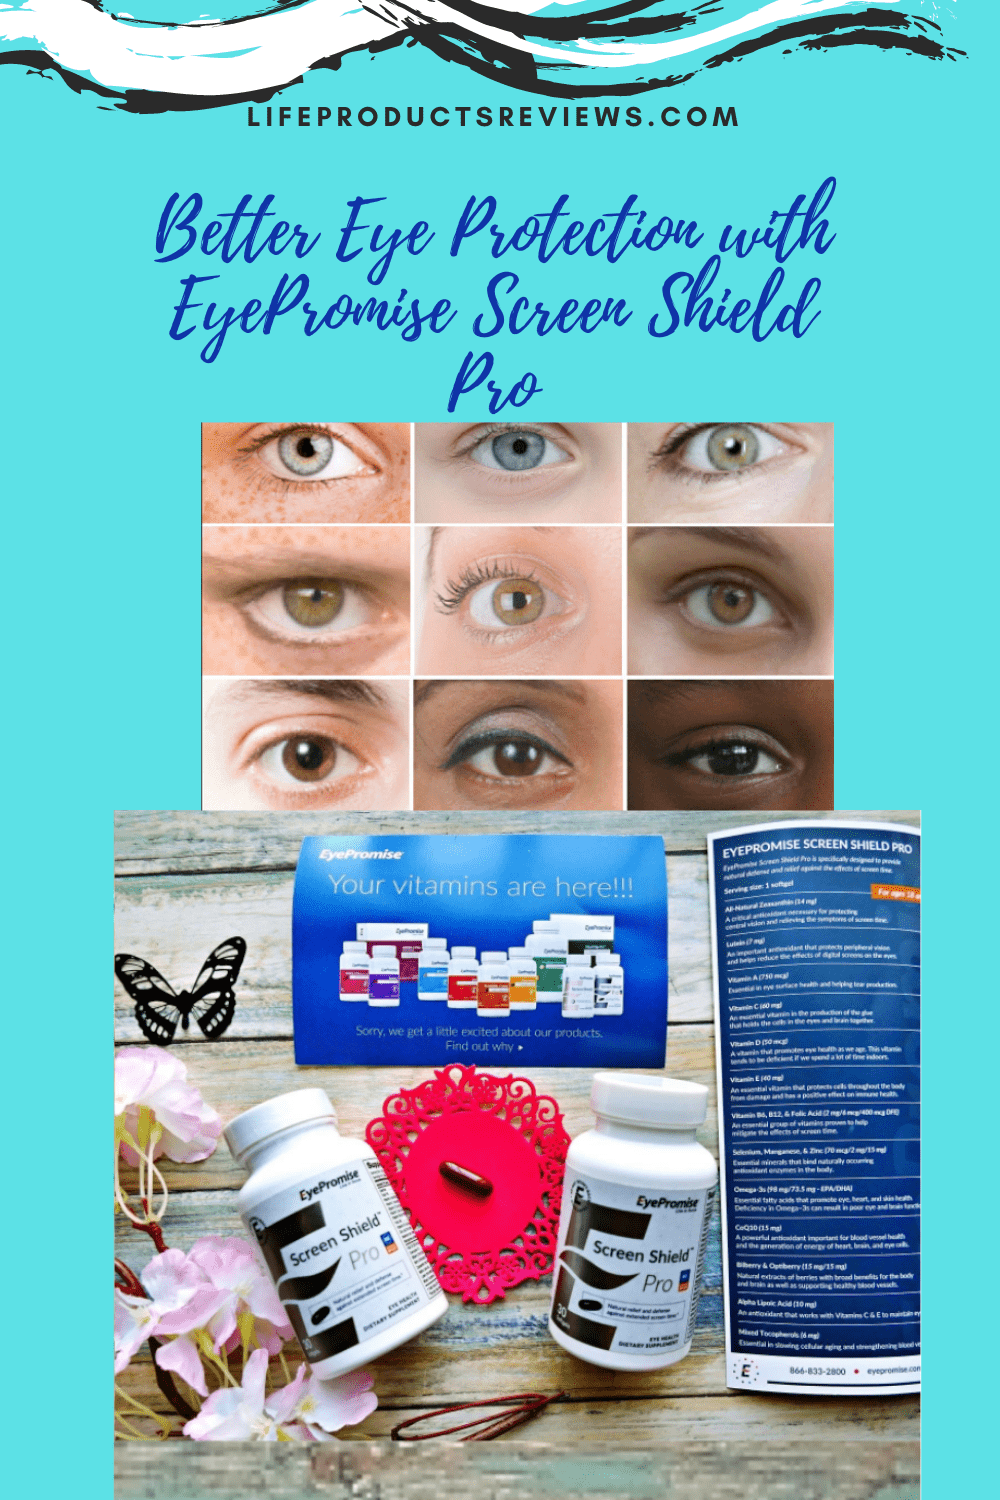 Eye-protection-eyepromise-screen-shield